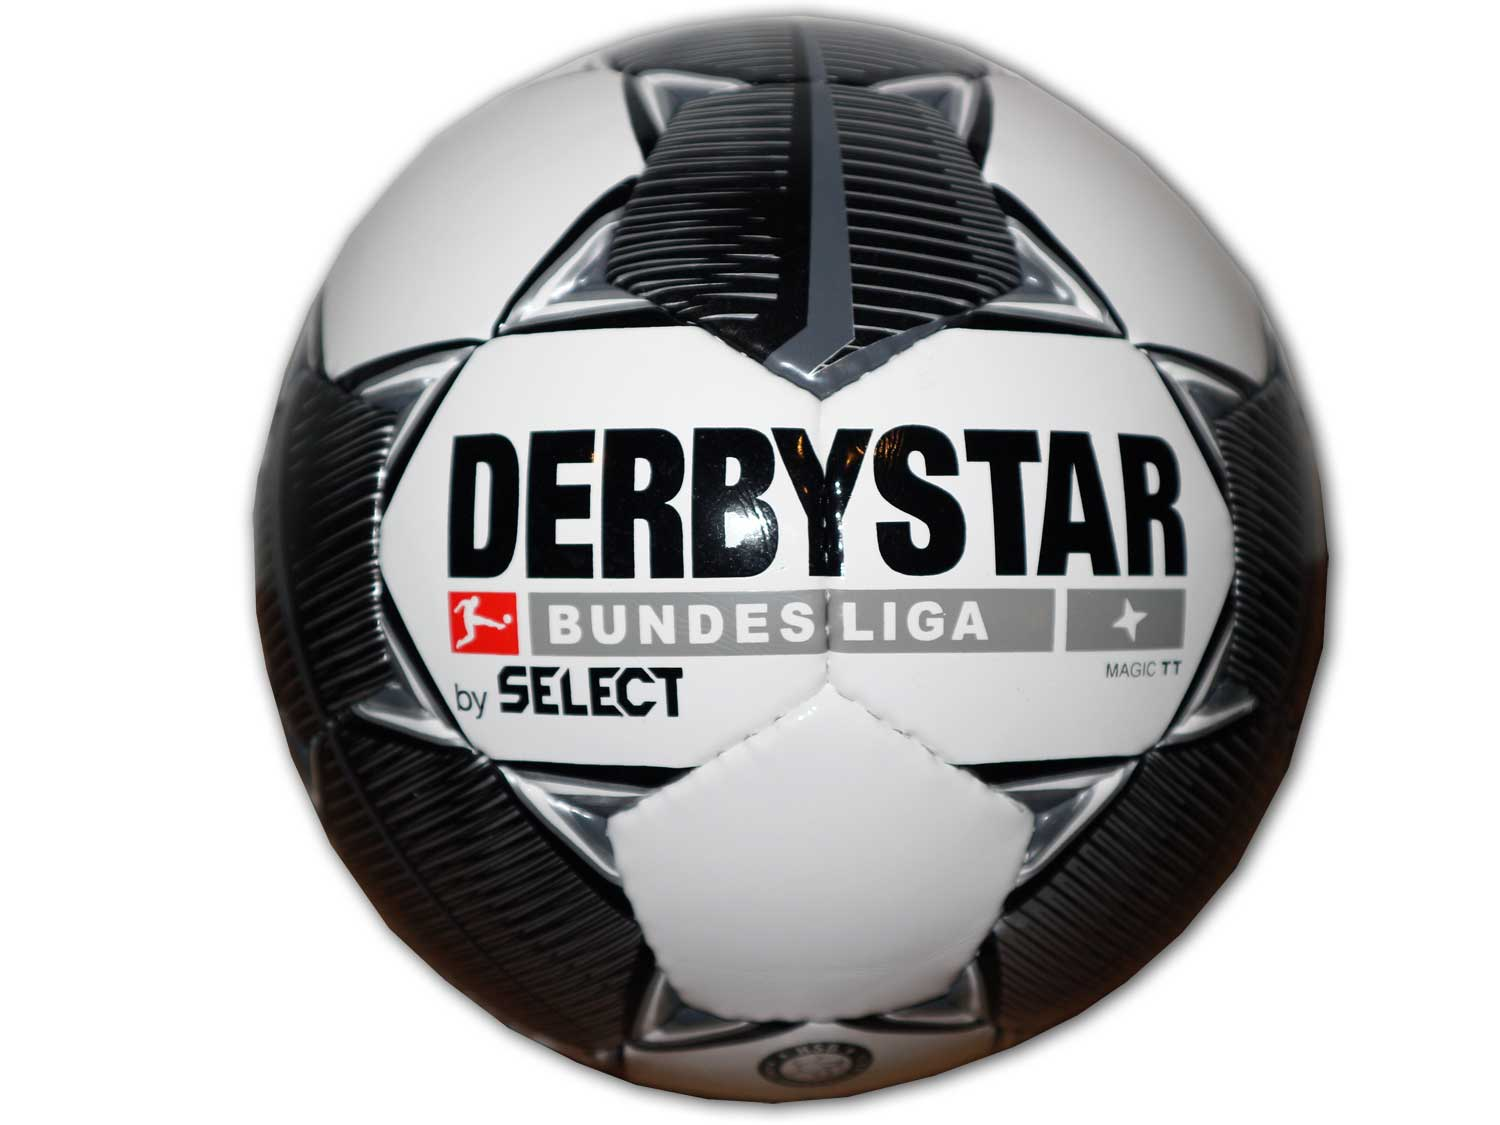 Derbystar Bundesliga Magic Tt Fussball